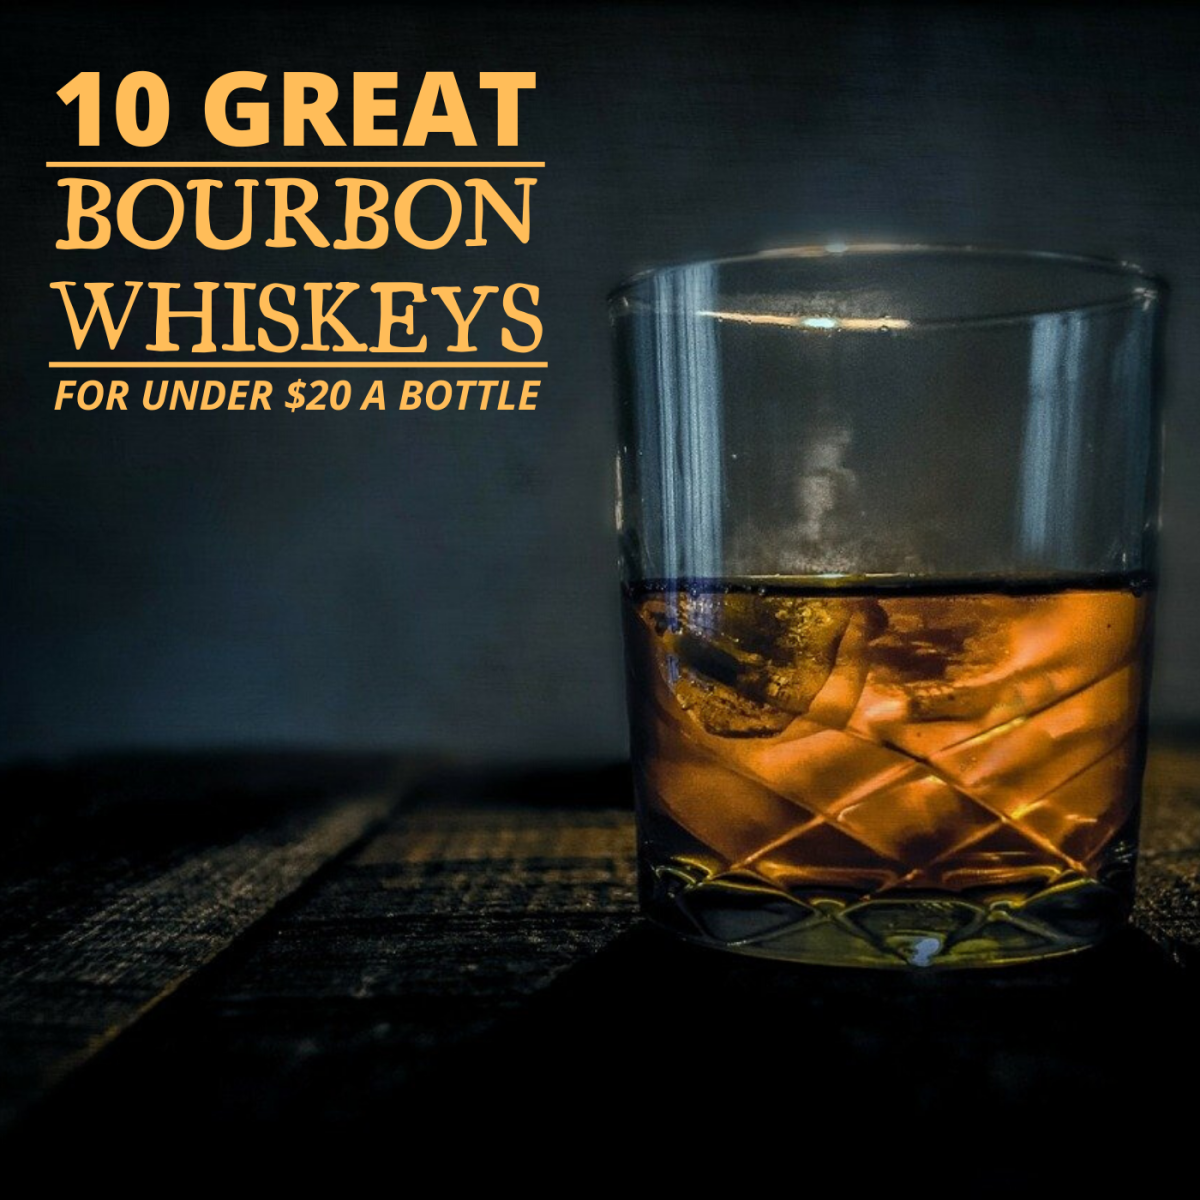 Looking for a great bourbon whiskey at a reasonable price? Check out my 10 selections below.